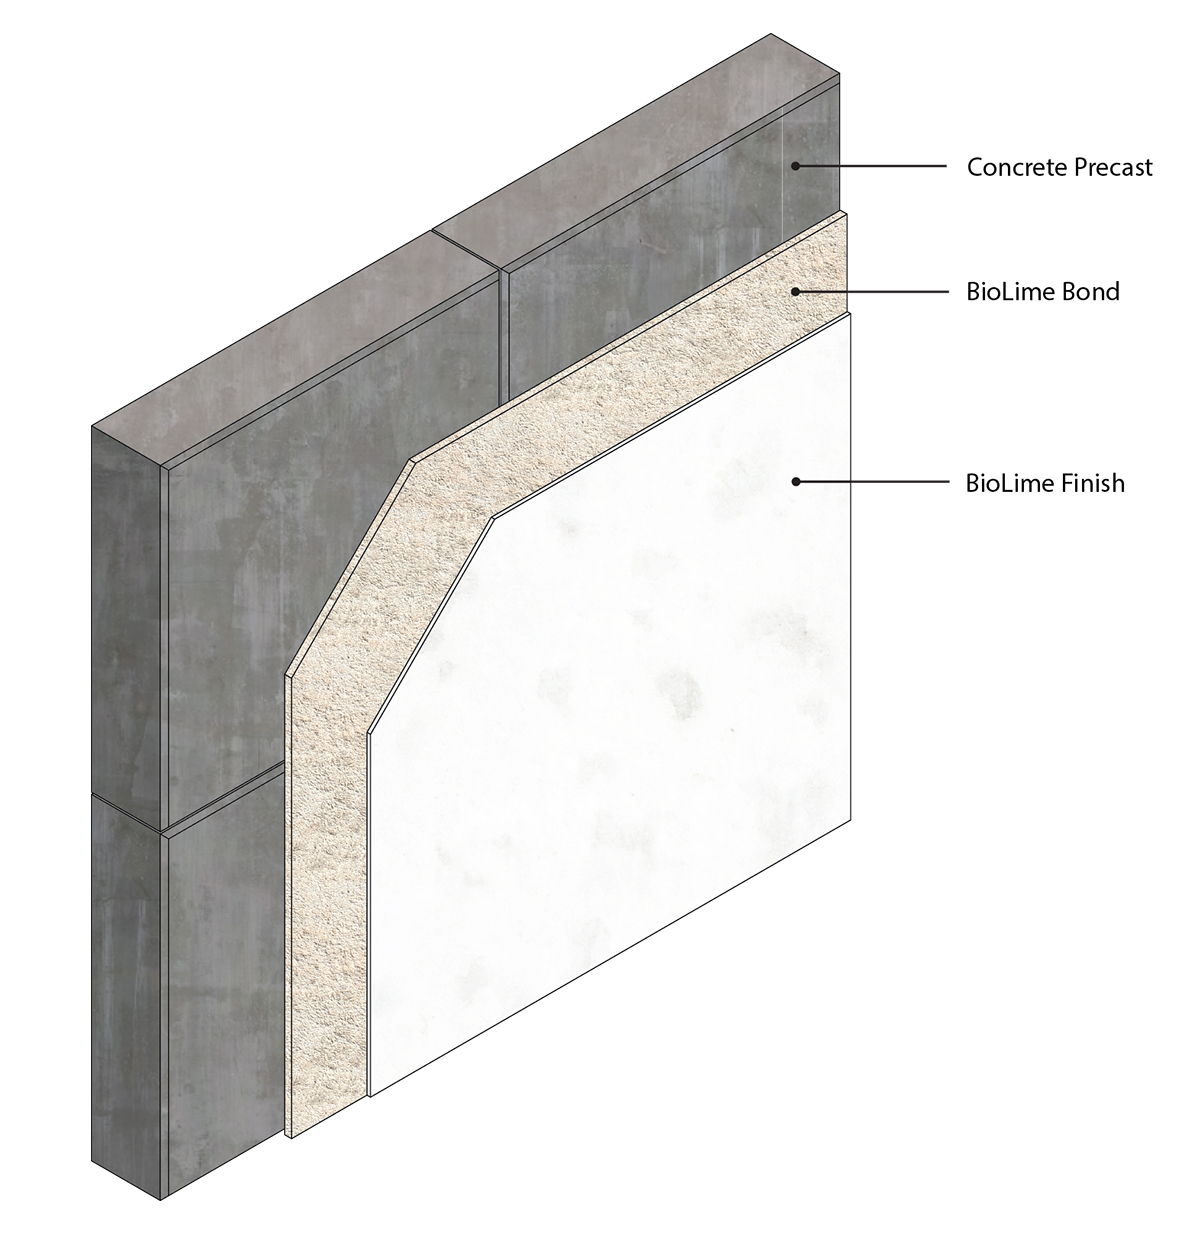 BioLime for Tilt-Wall / Precast Concrete